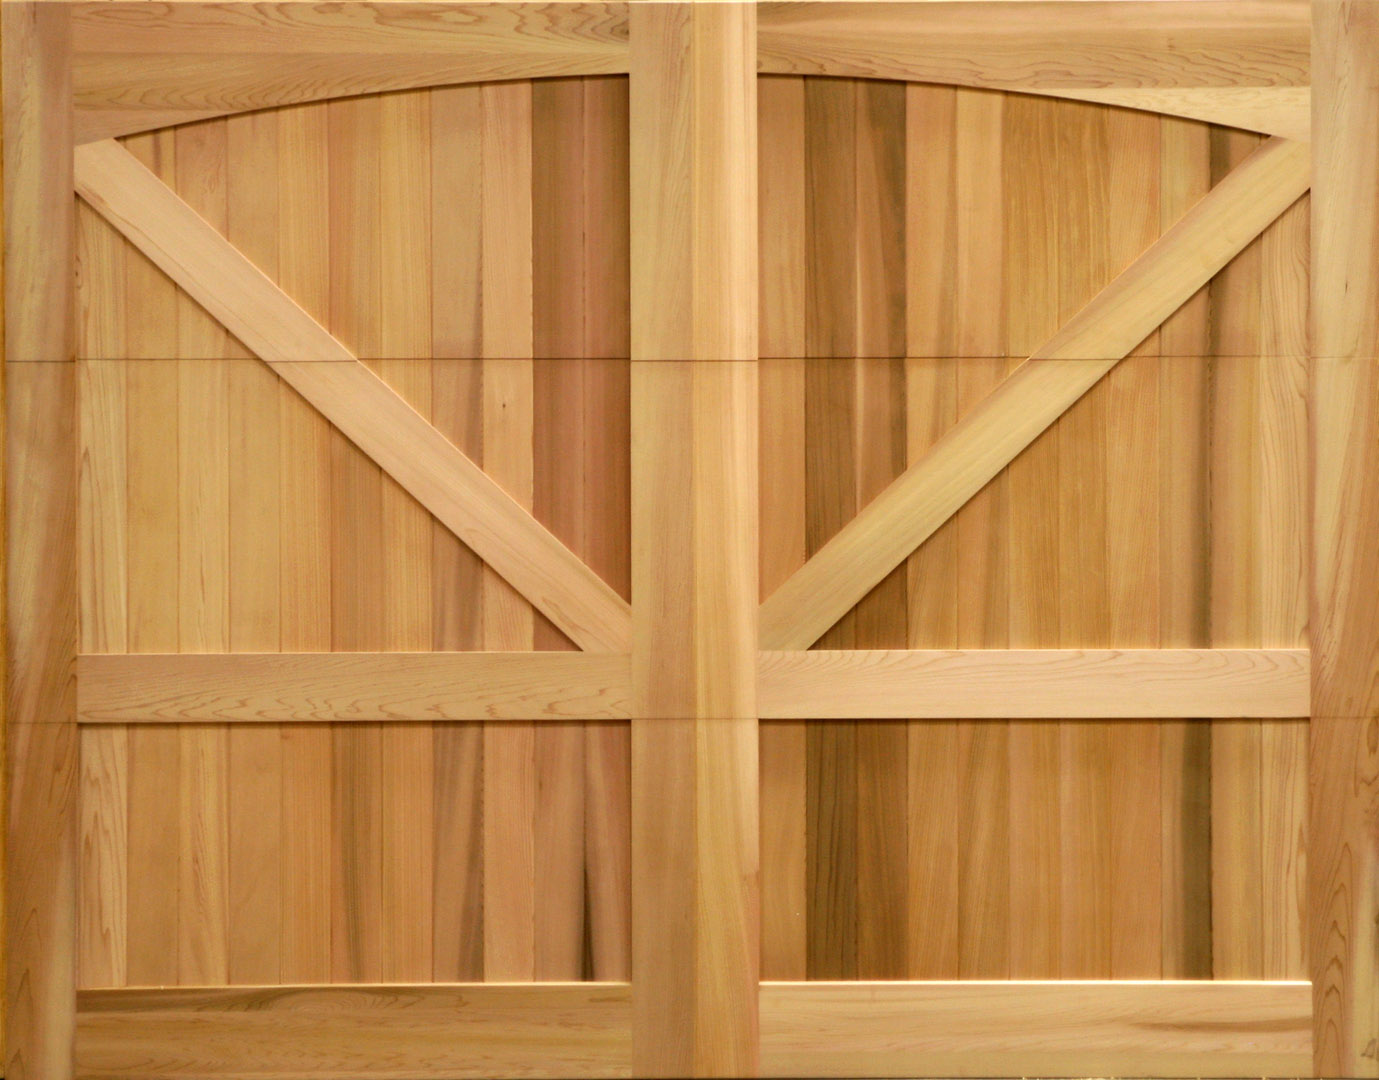 1080 #4B2100  Overhead Garage Doors Wood Garage Doors Paint Grade Garage Doors image Garage Doors With A Door 37731379